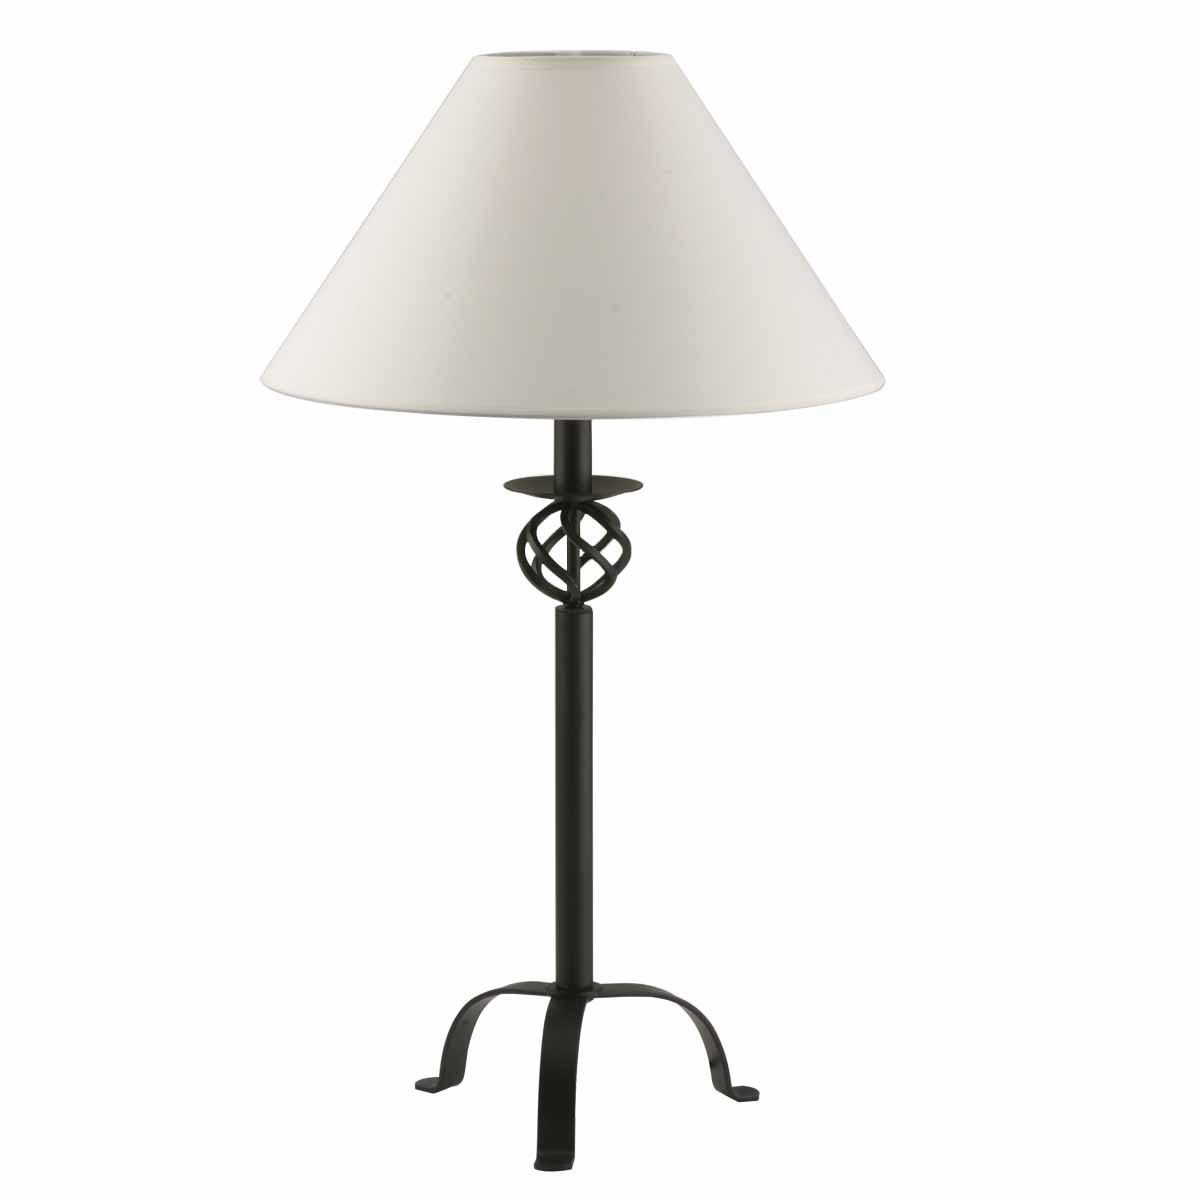 black wrought iron table lamp 28 h. Black Bedroom Furniture Sets. Home Design Ideas